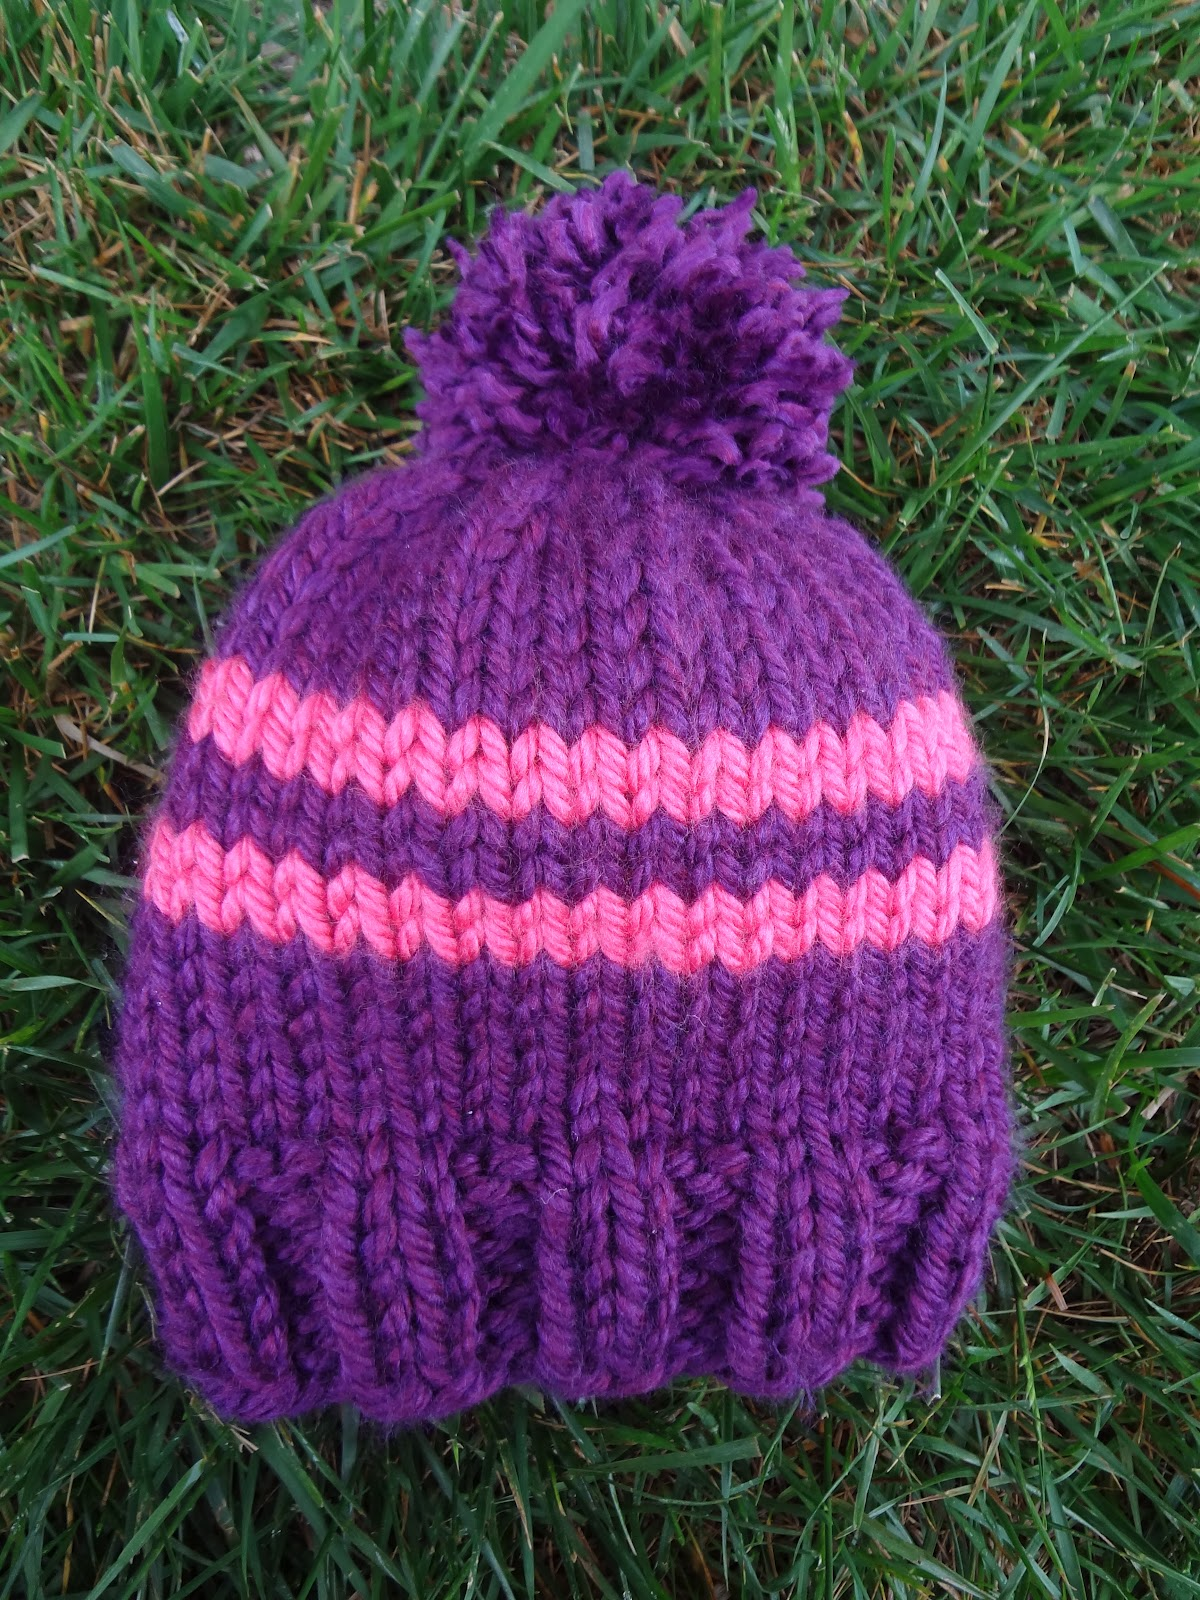 Free Knitting Patterns For Toddlers Beanies : Fiber Flux: Free Knitting Pattern! Preschooler Rugby Hat